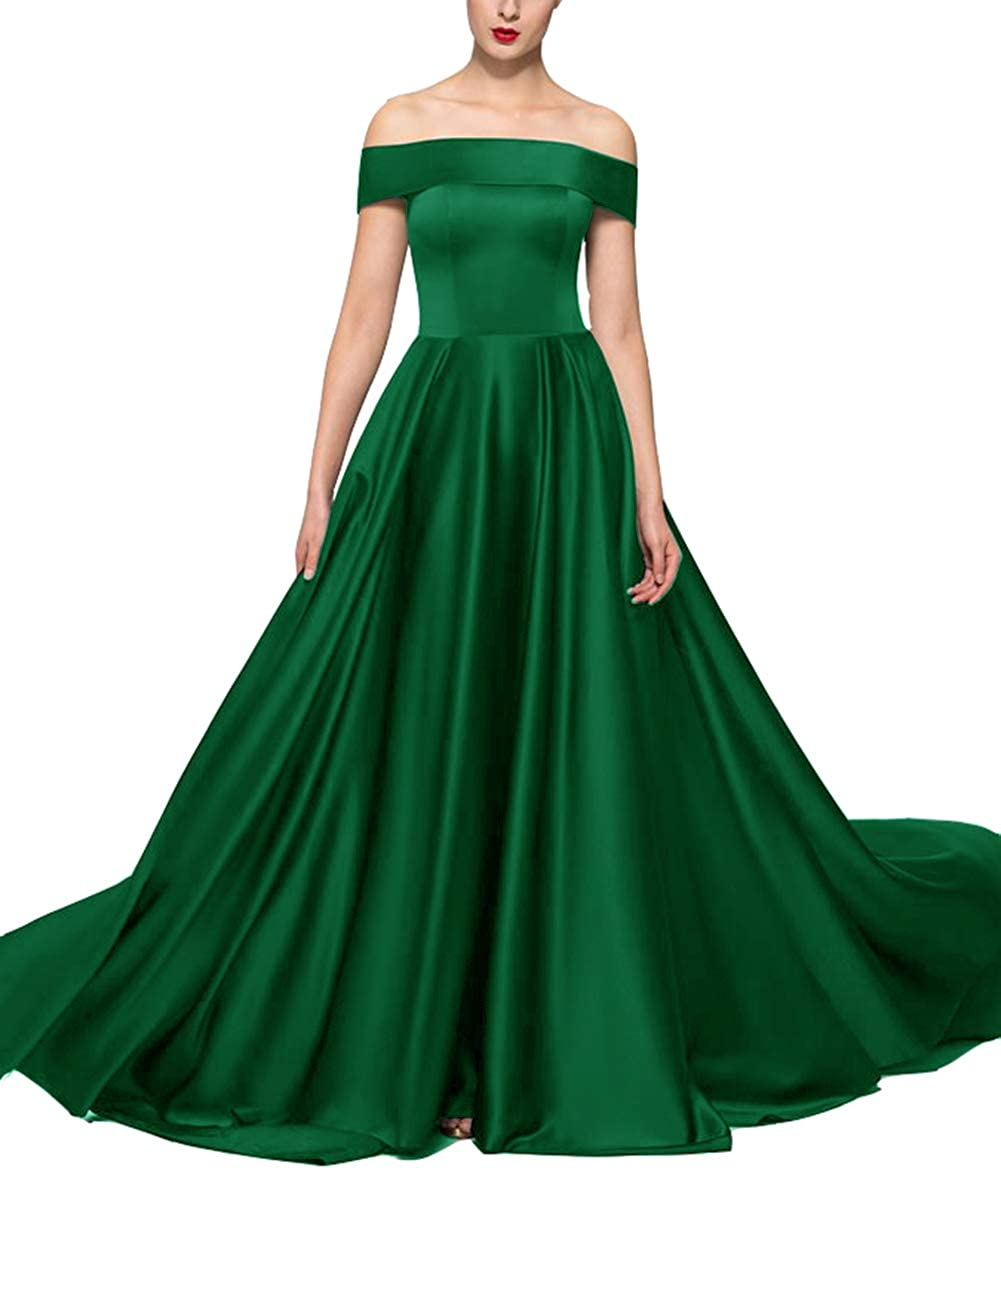 Green Uther Formal Wedding Guest Party Dresses Off The Shoulder ALine Long Evening Dress